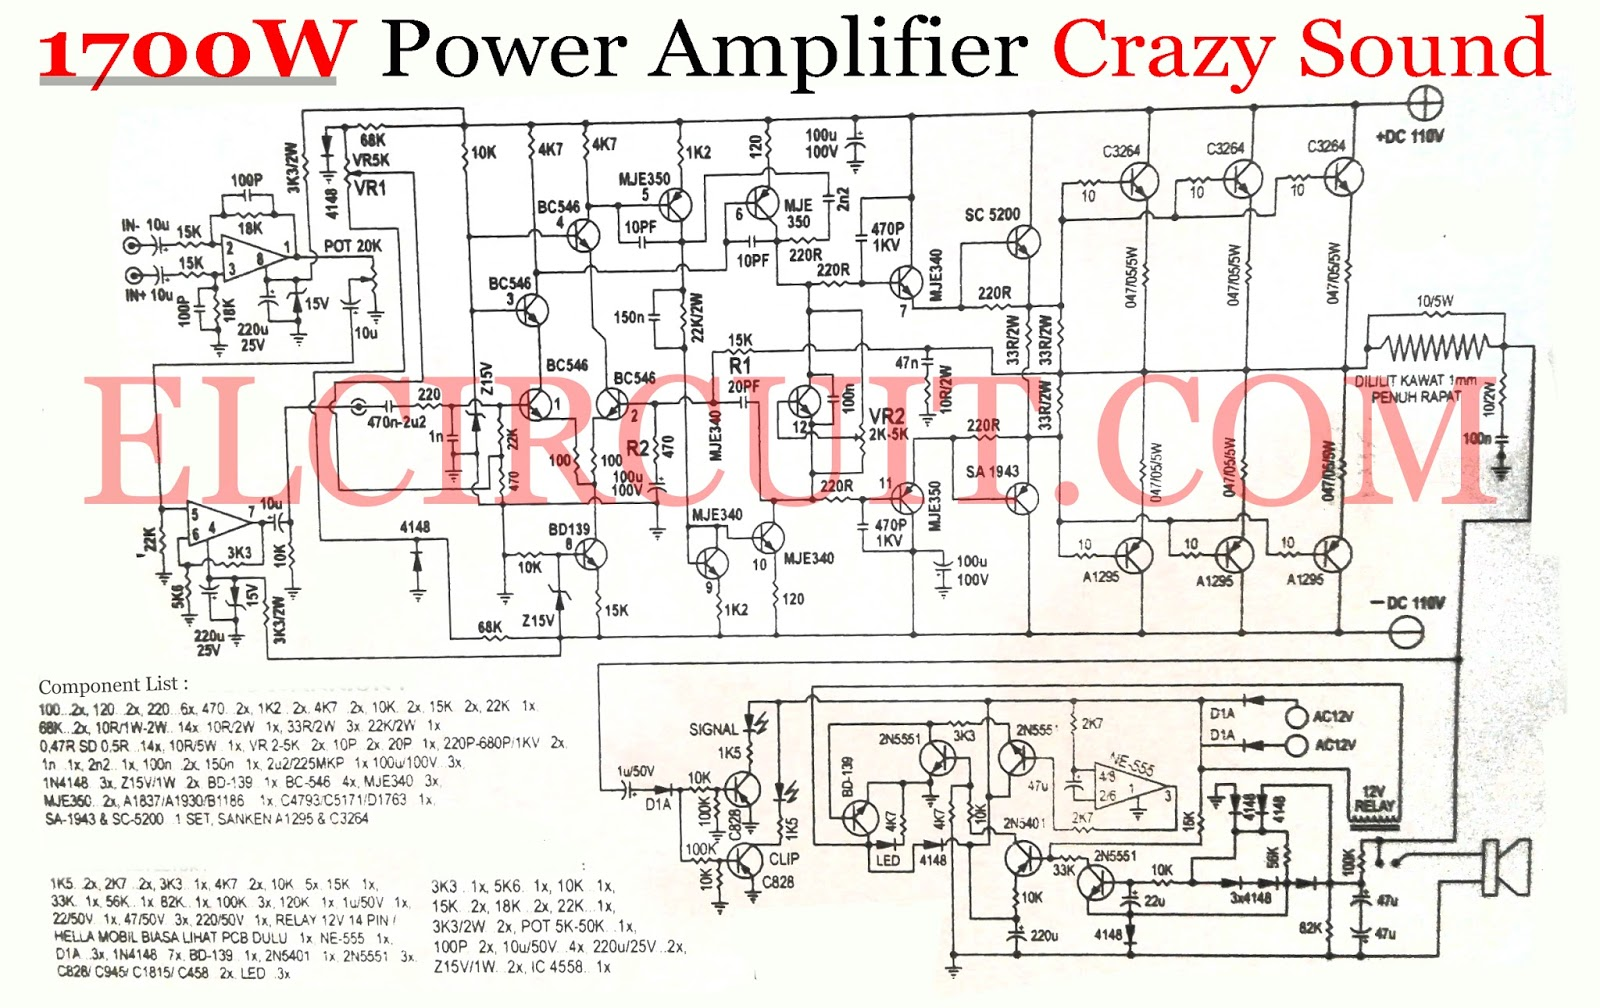 hight resolution of 2000w audio amplifier circuit diagram wiring diagram sort 2000w audio amplifier circuit diagrams